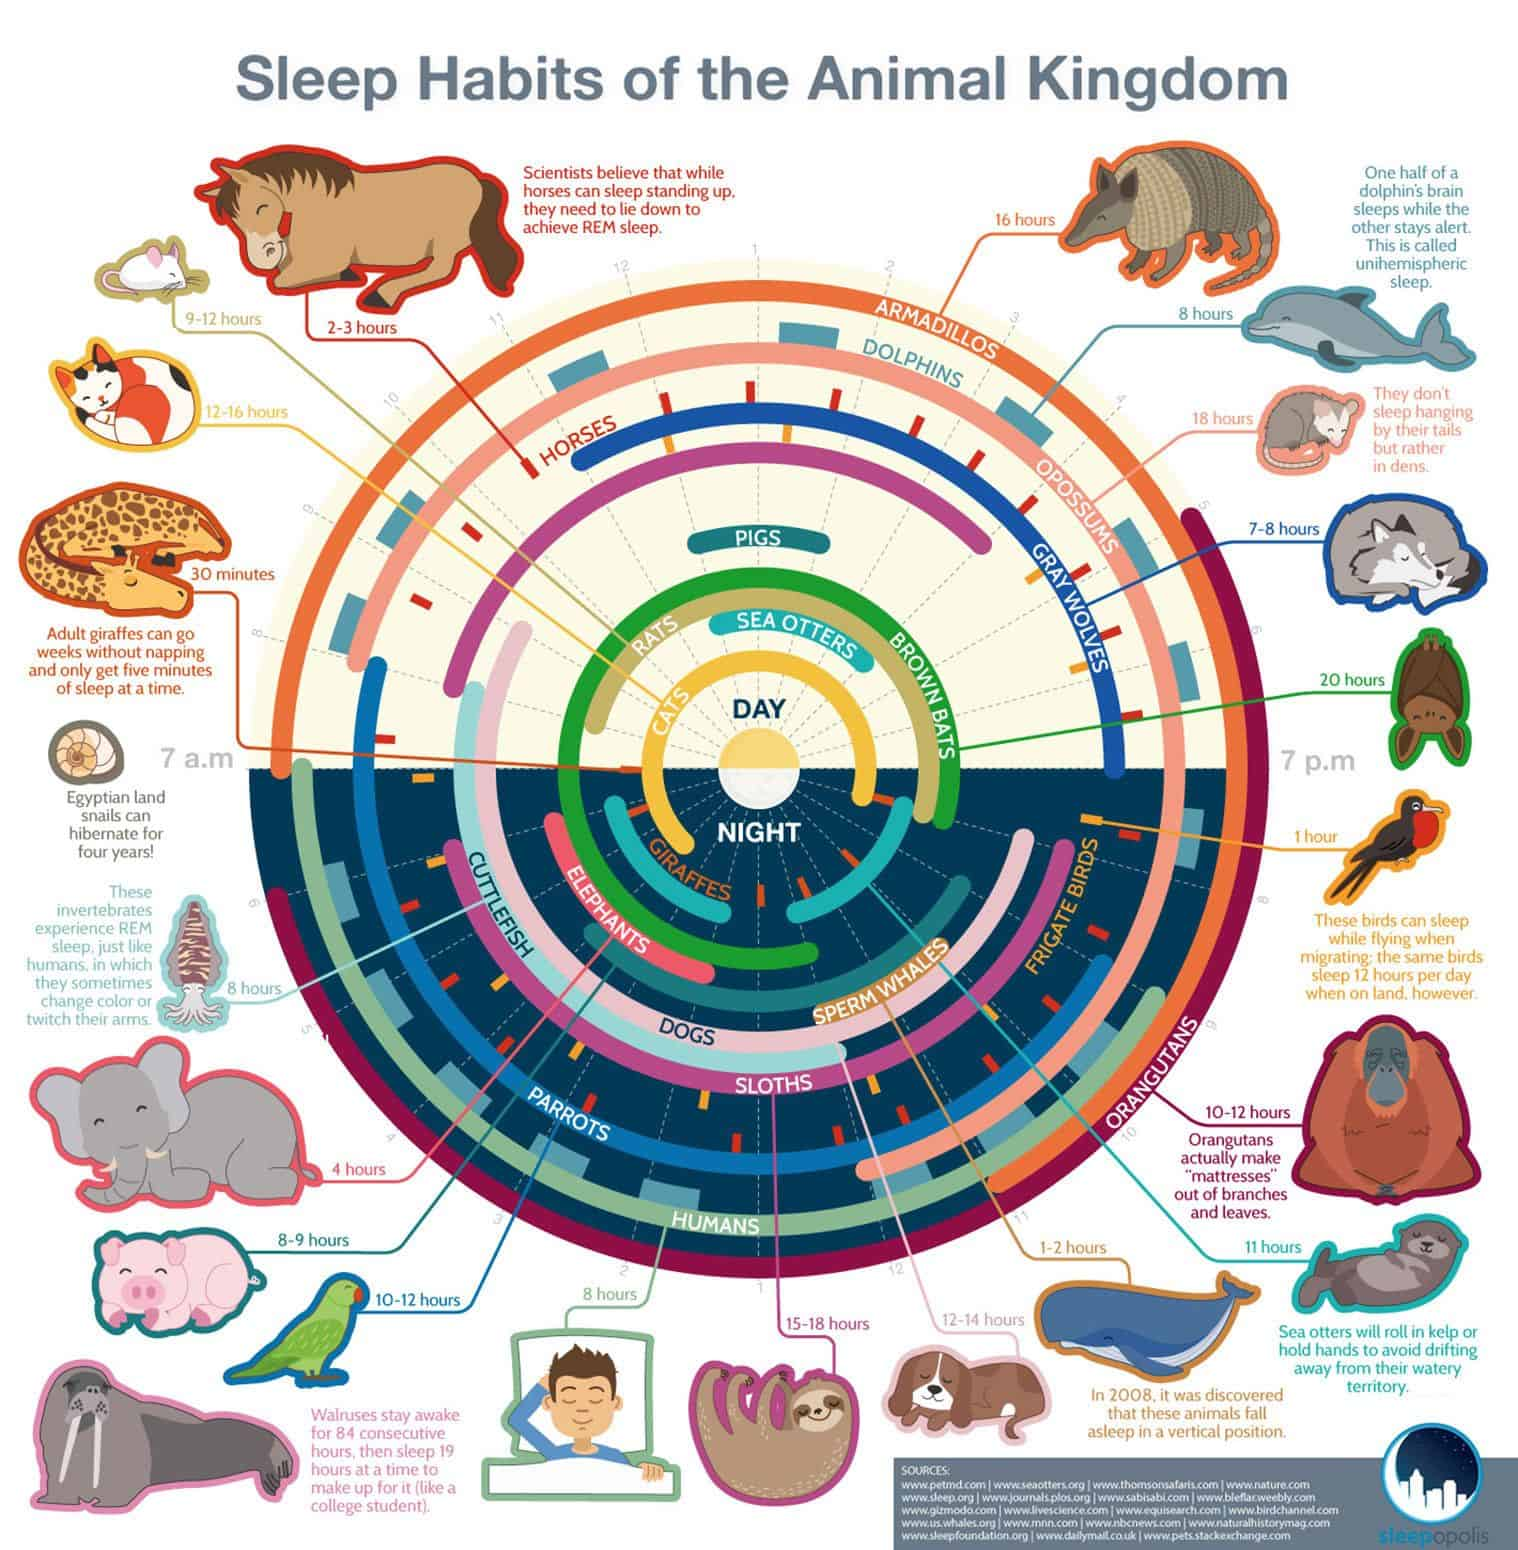 Sleeping habits of animals